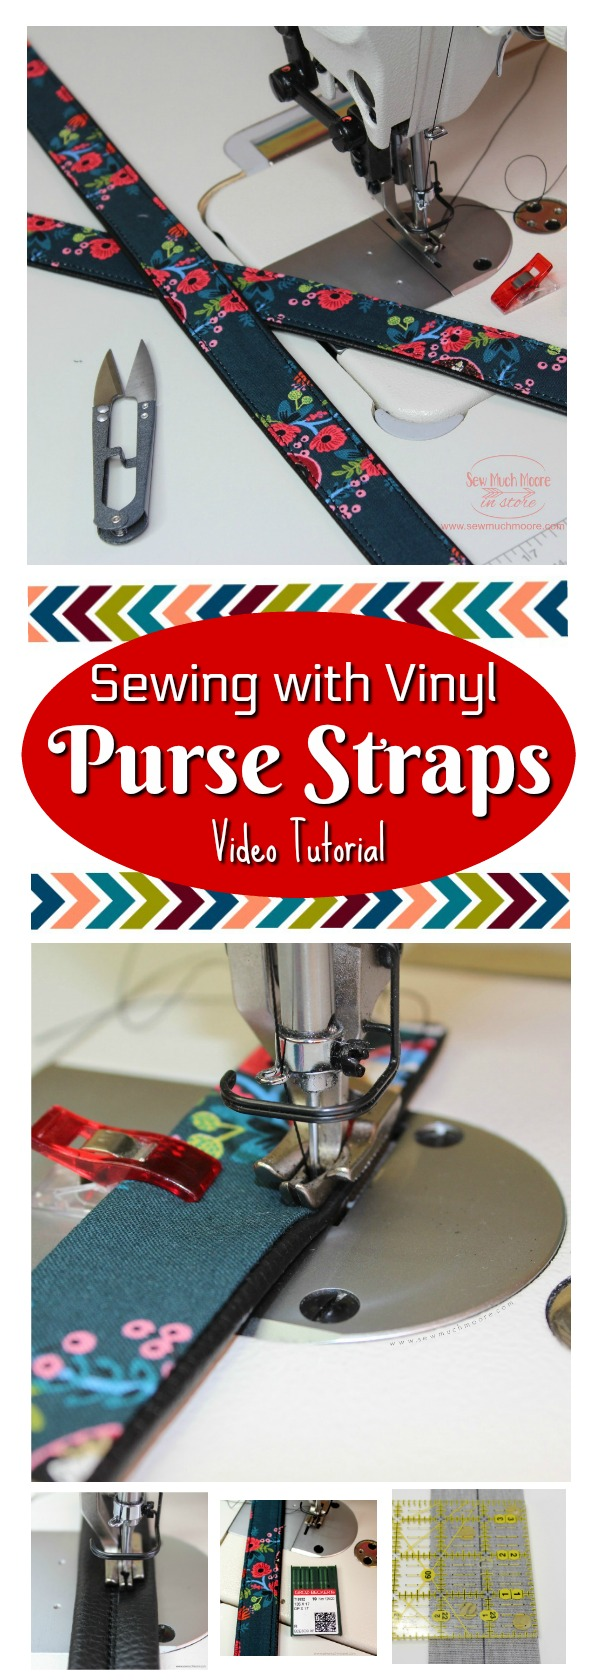 Industrial Sewing Machine Sewing with Vinyl Pinterest Pin